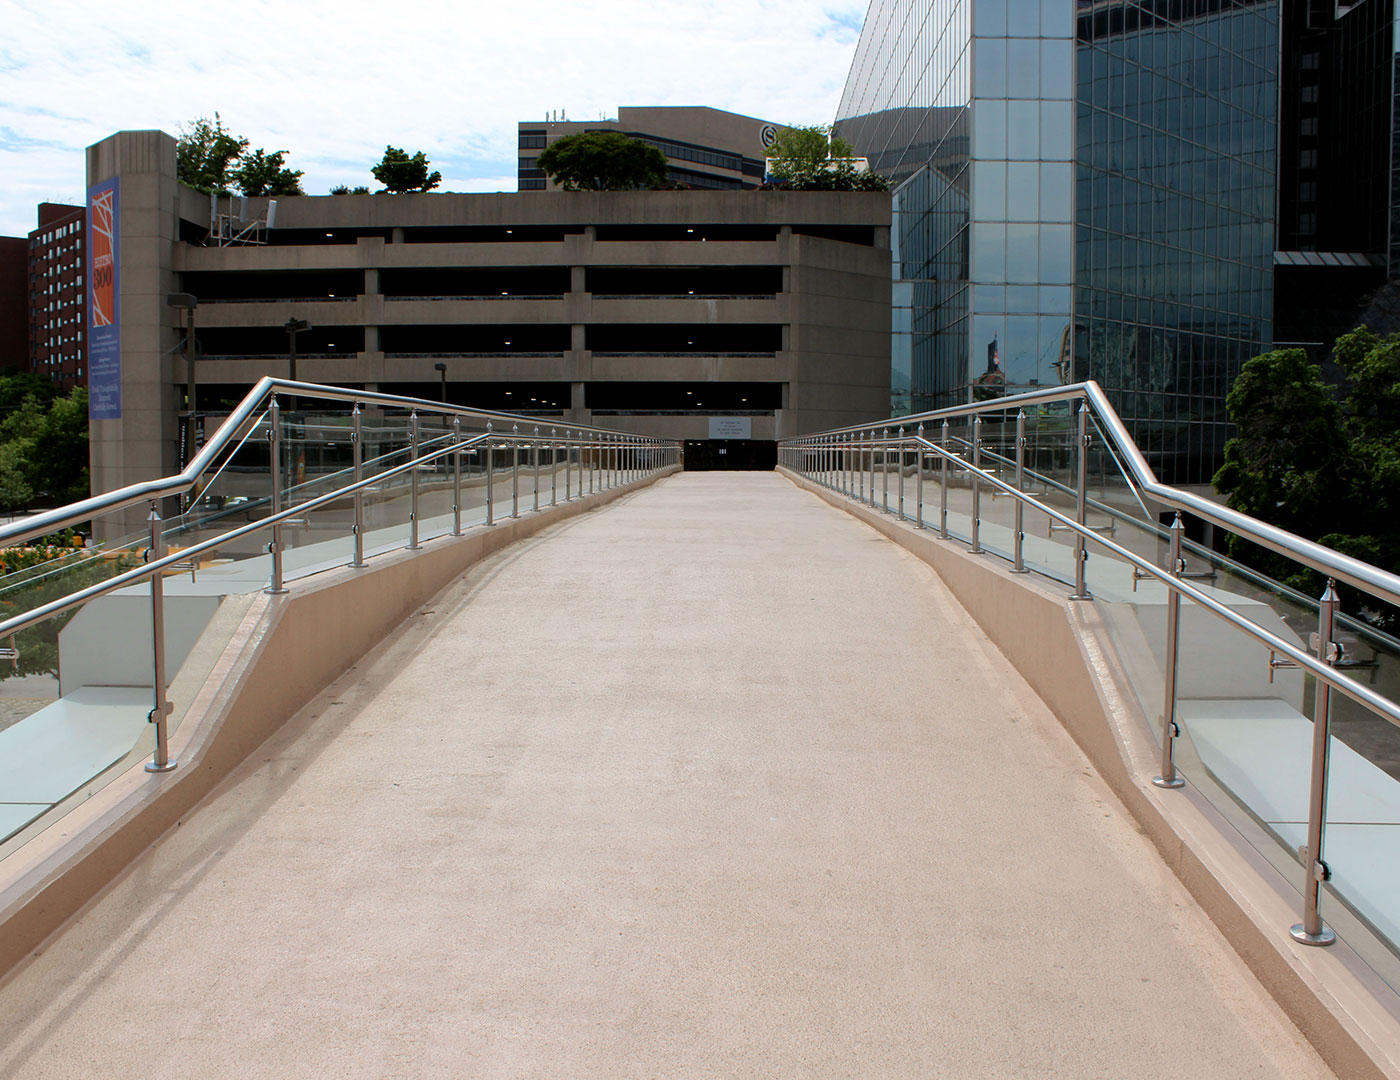 Exterior pedestrian bridge with glass railing